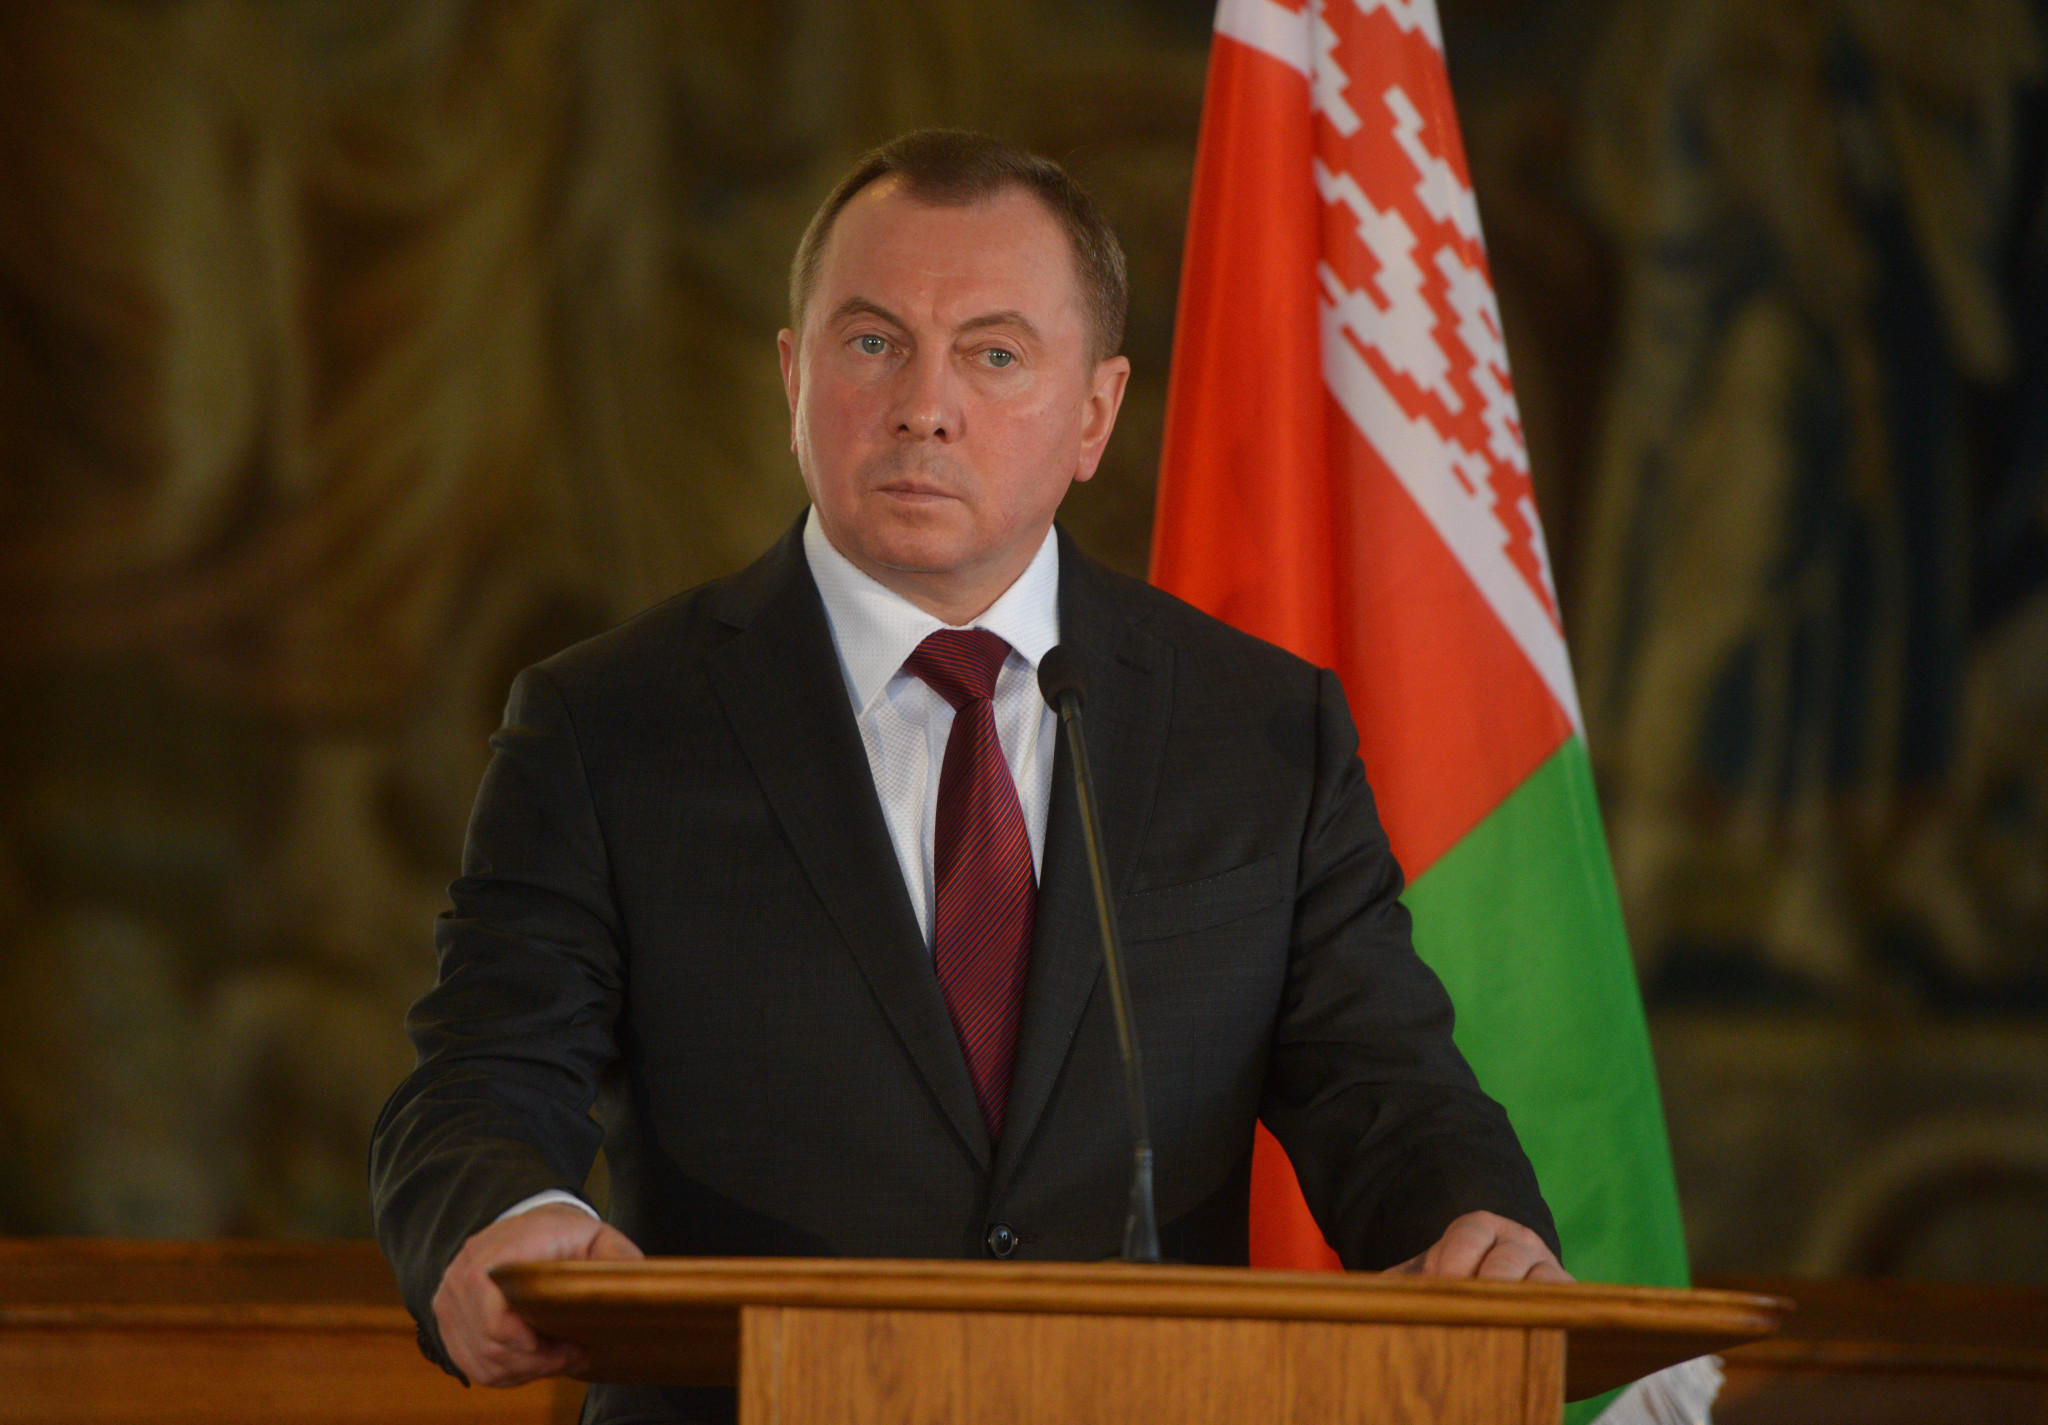 Foreign Minister says Minsk 2019 will open Belarus to the world